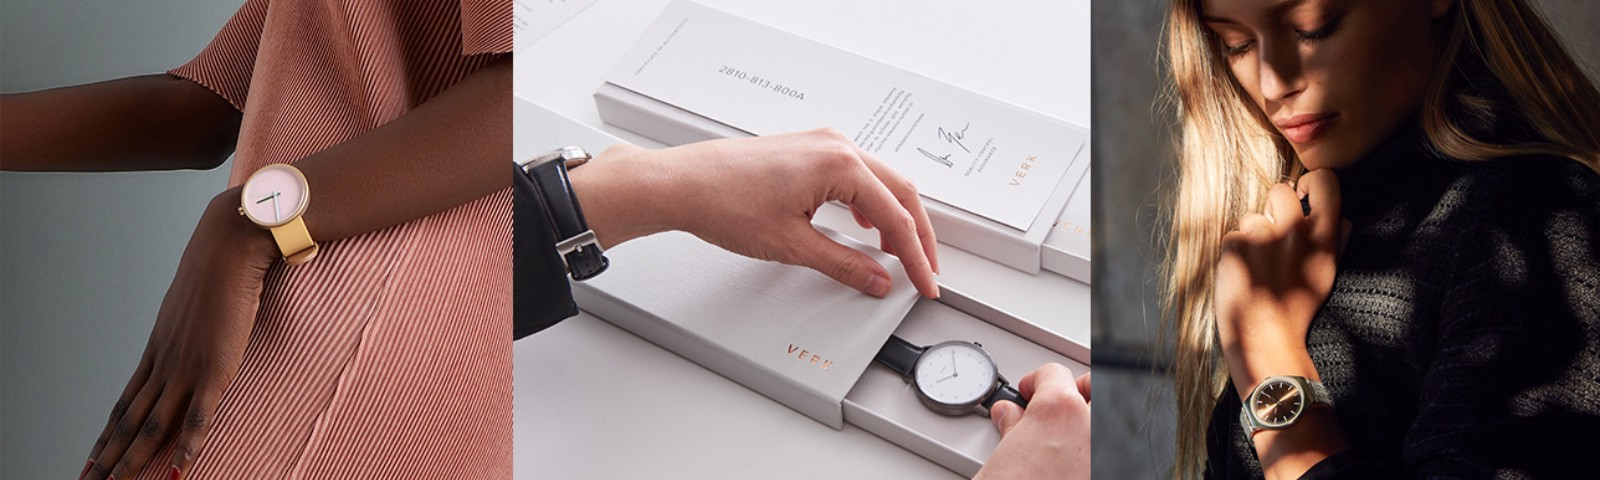 dde900a3a31 Minimalist Watch Brands You Can Actually Afford